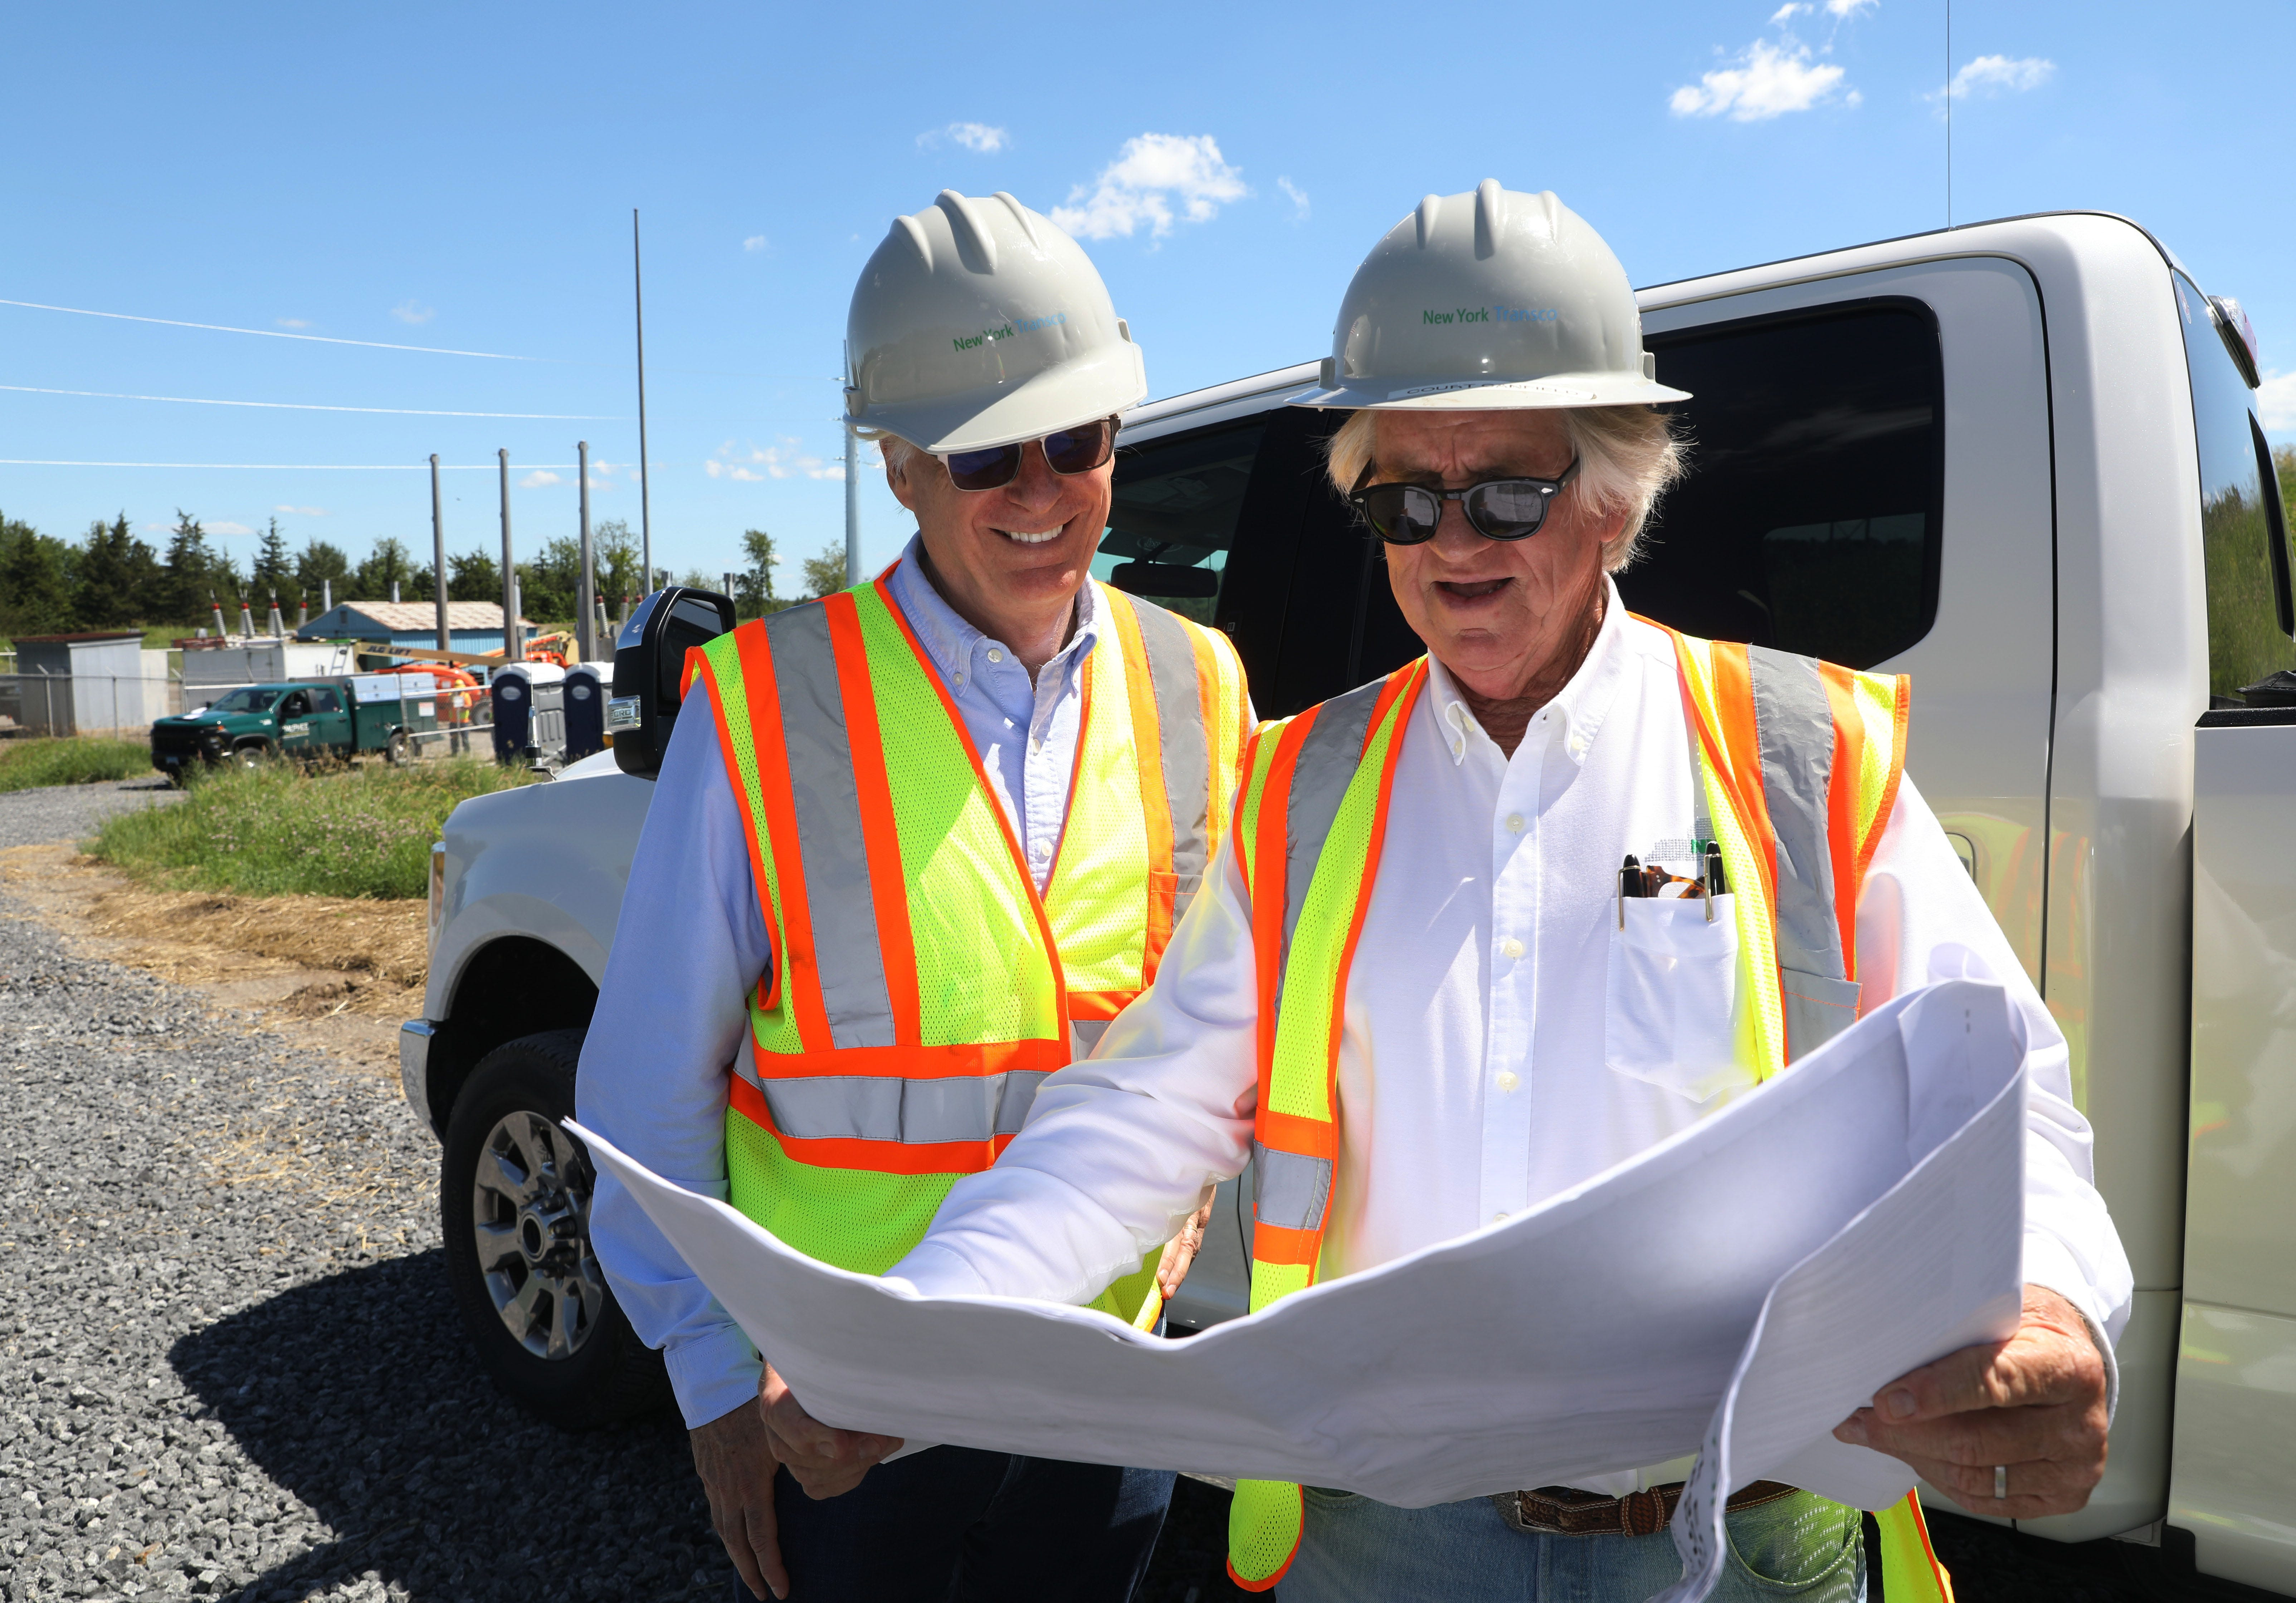 From left, New York Energy Solution Construction Director Court Canfield and New York Transco President Vic Mullin check in on a transmission line upgrade in progress near the Churchtown switching station in Claverack on June 24, 2021.